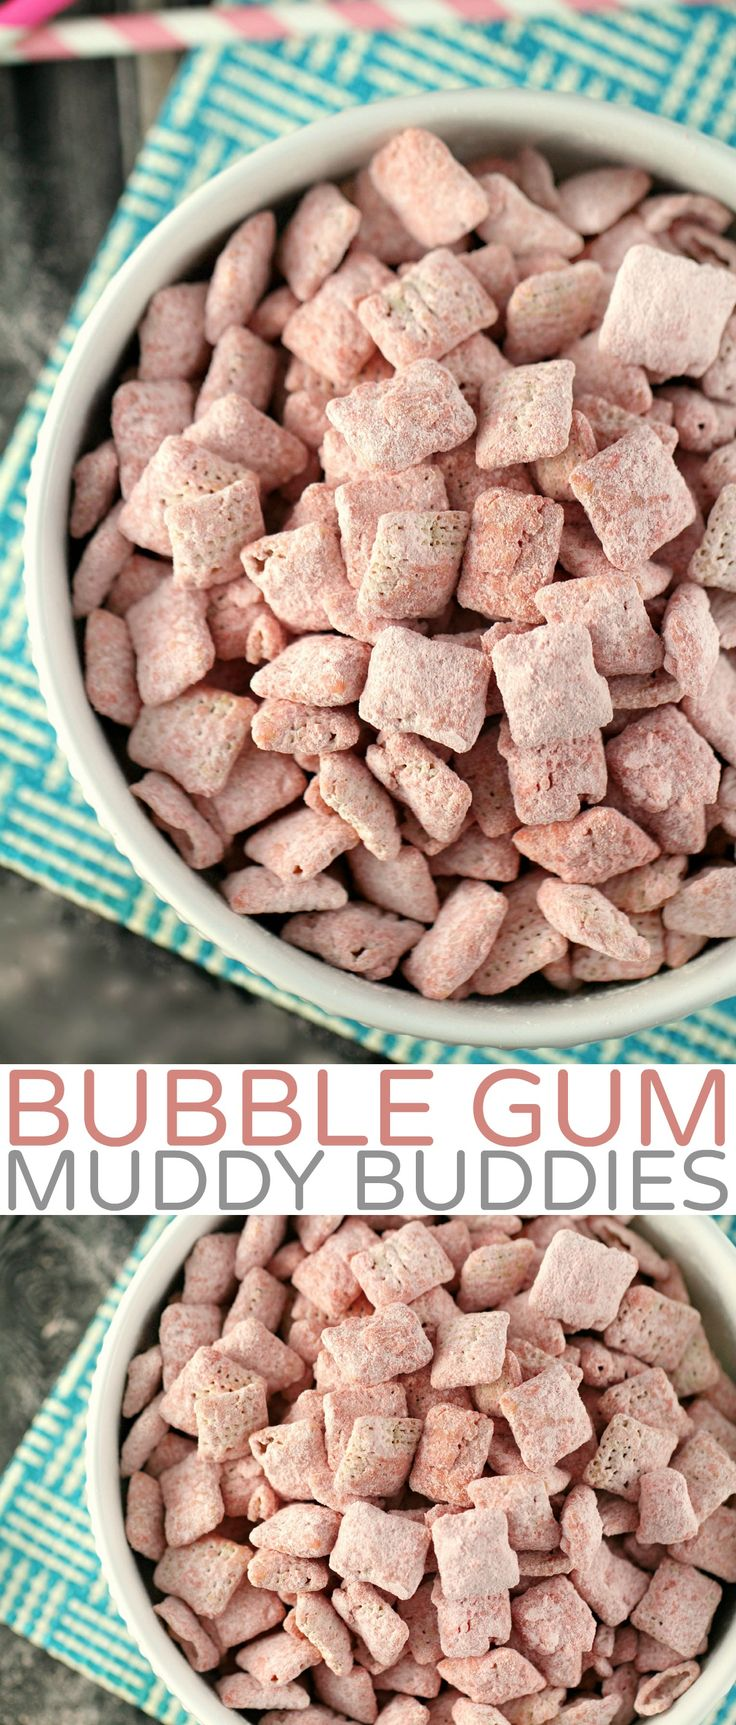 Bubble Gum Muddy Buddies - Life Love Liz www.lifeloveliz.com/ bubble-gum-muddy-buddies Bubble Gum Muddy Buddies are an addictive snack perfect for kids birthday parties or just for a little nostalgia!